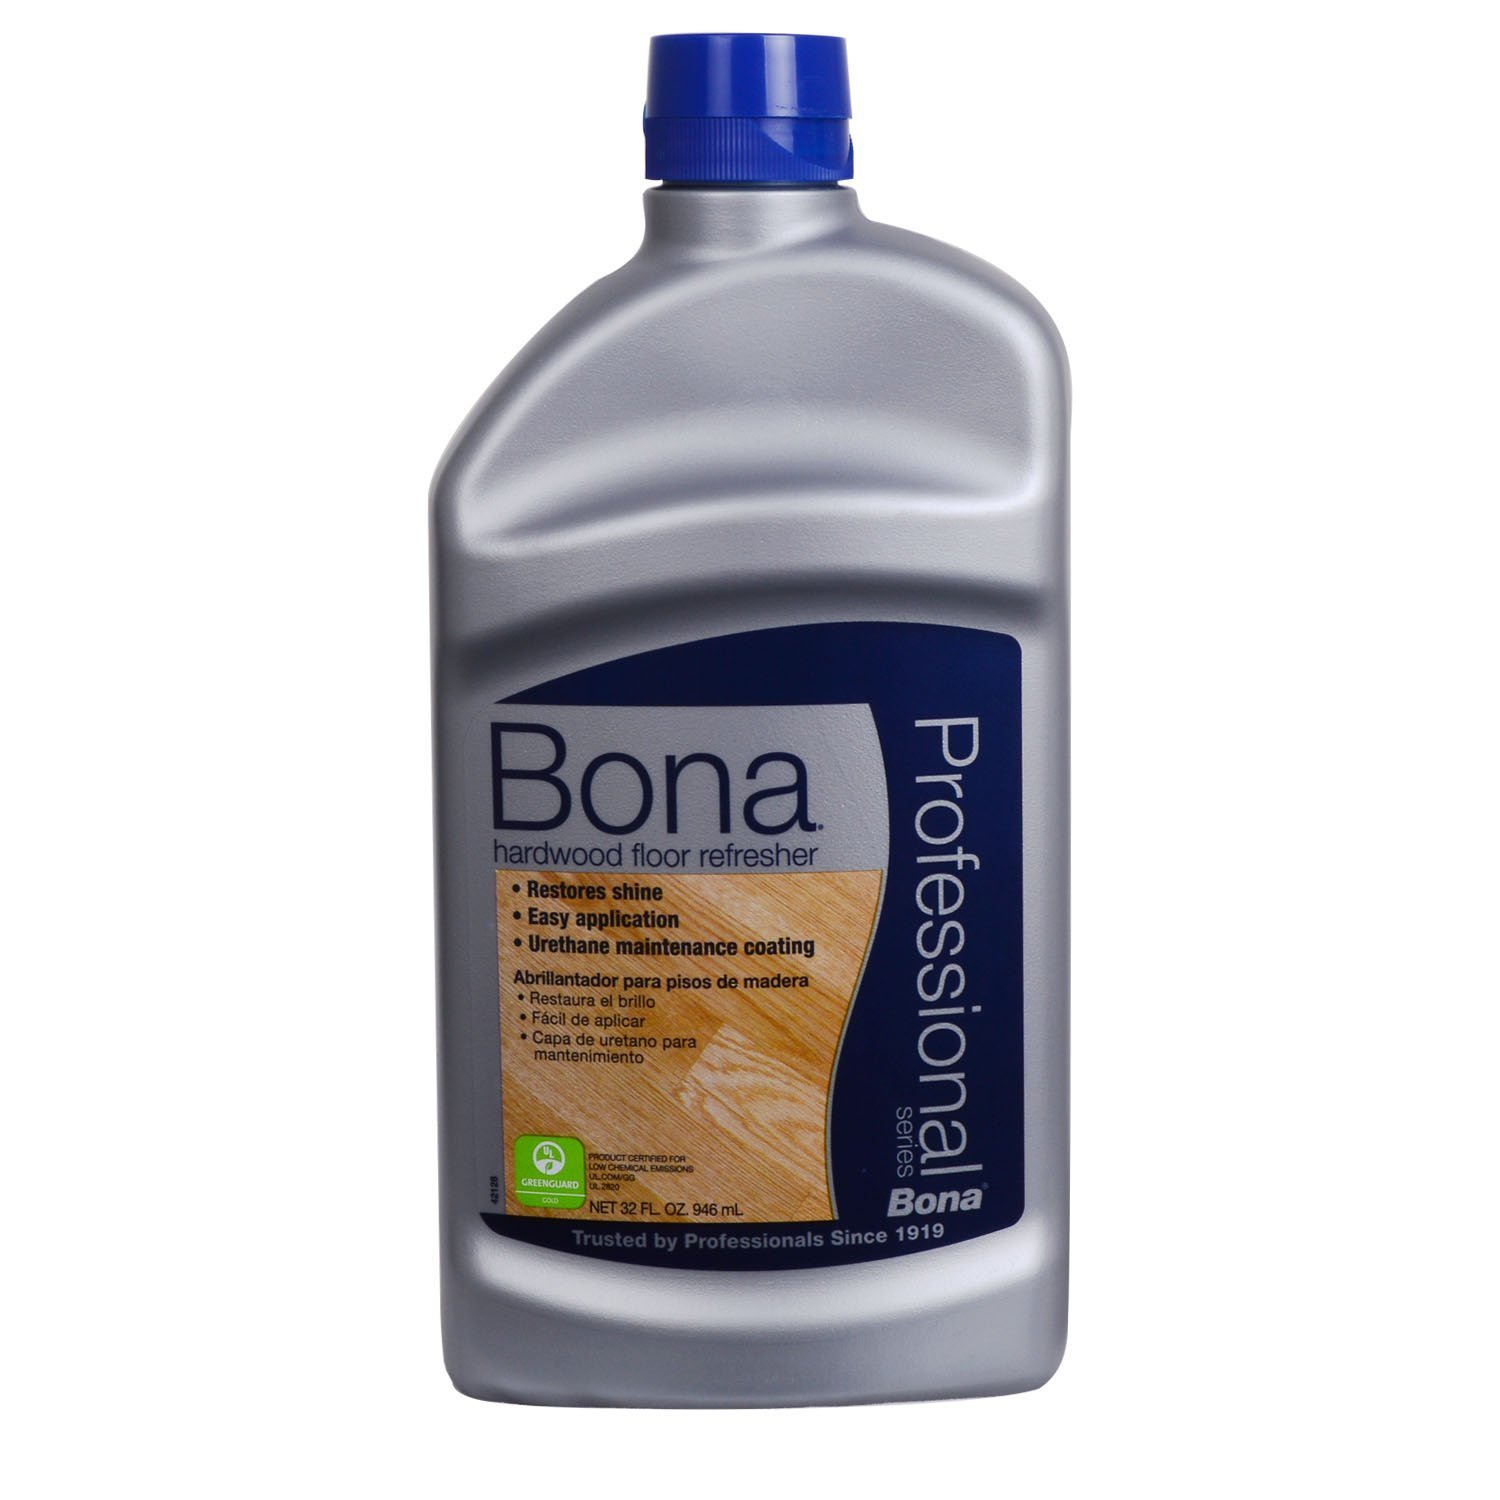 Bona Pro Series Wt760051163 Hardwood Floor Refresher, 32-Ounce